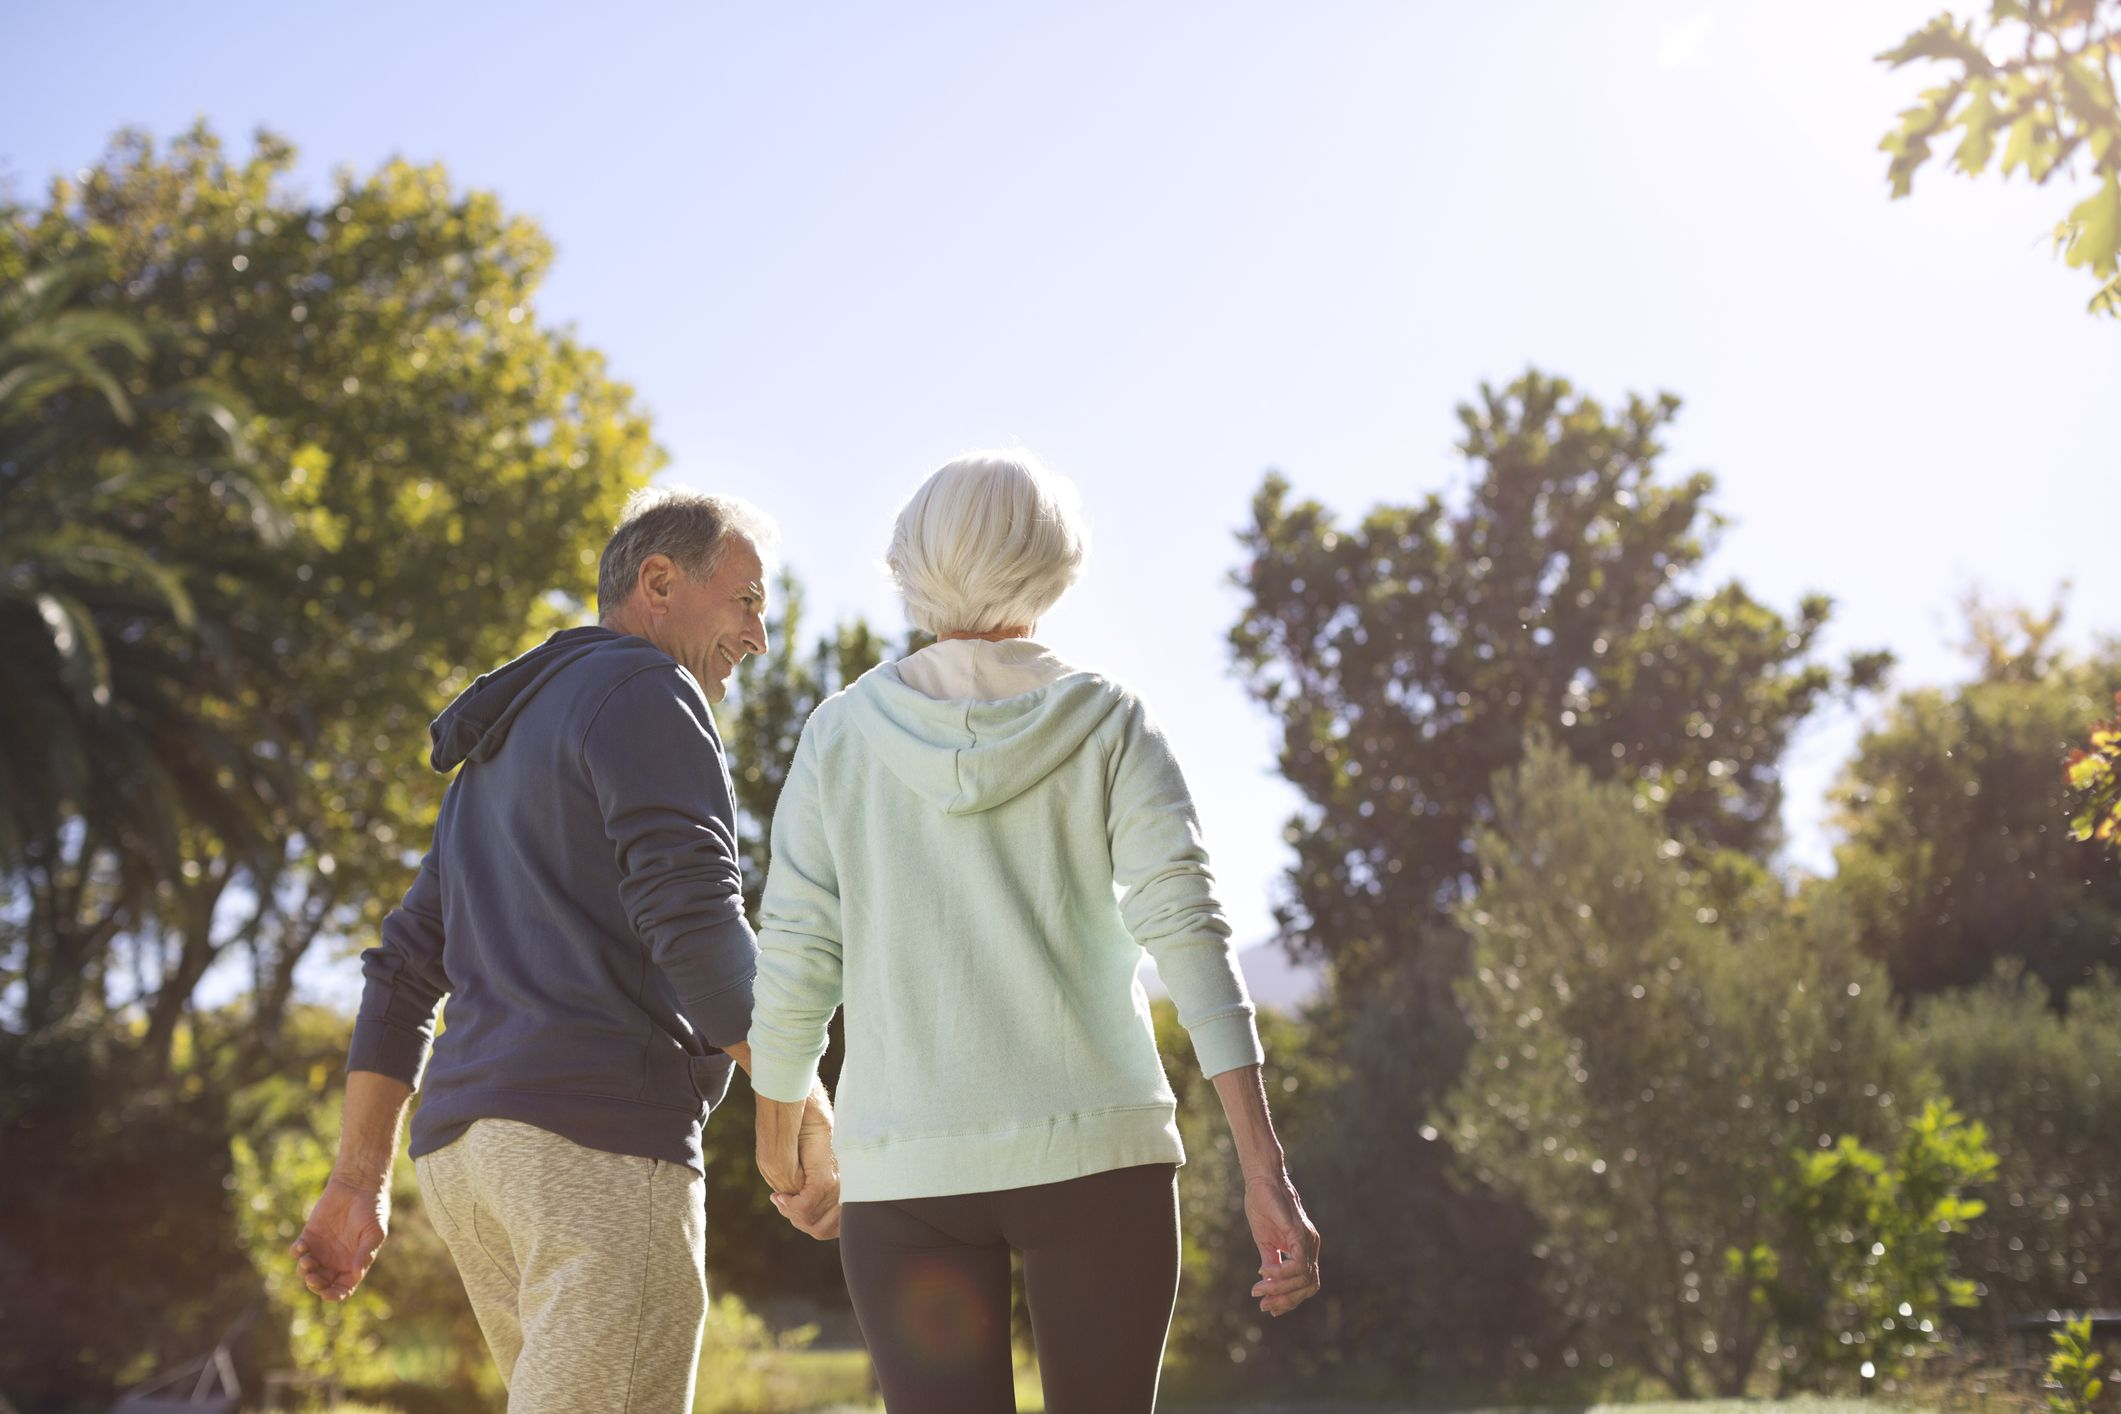 7 Simple Ways to Extend Your Life Expectancy